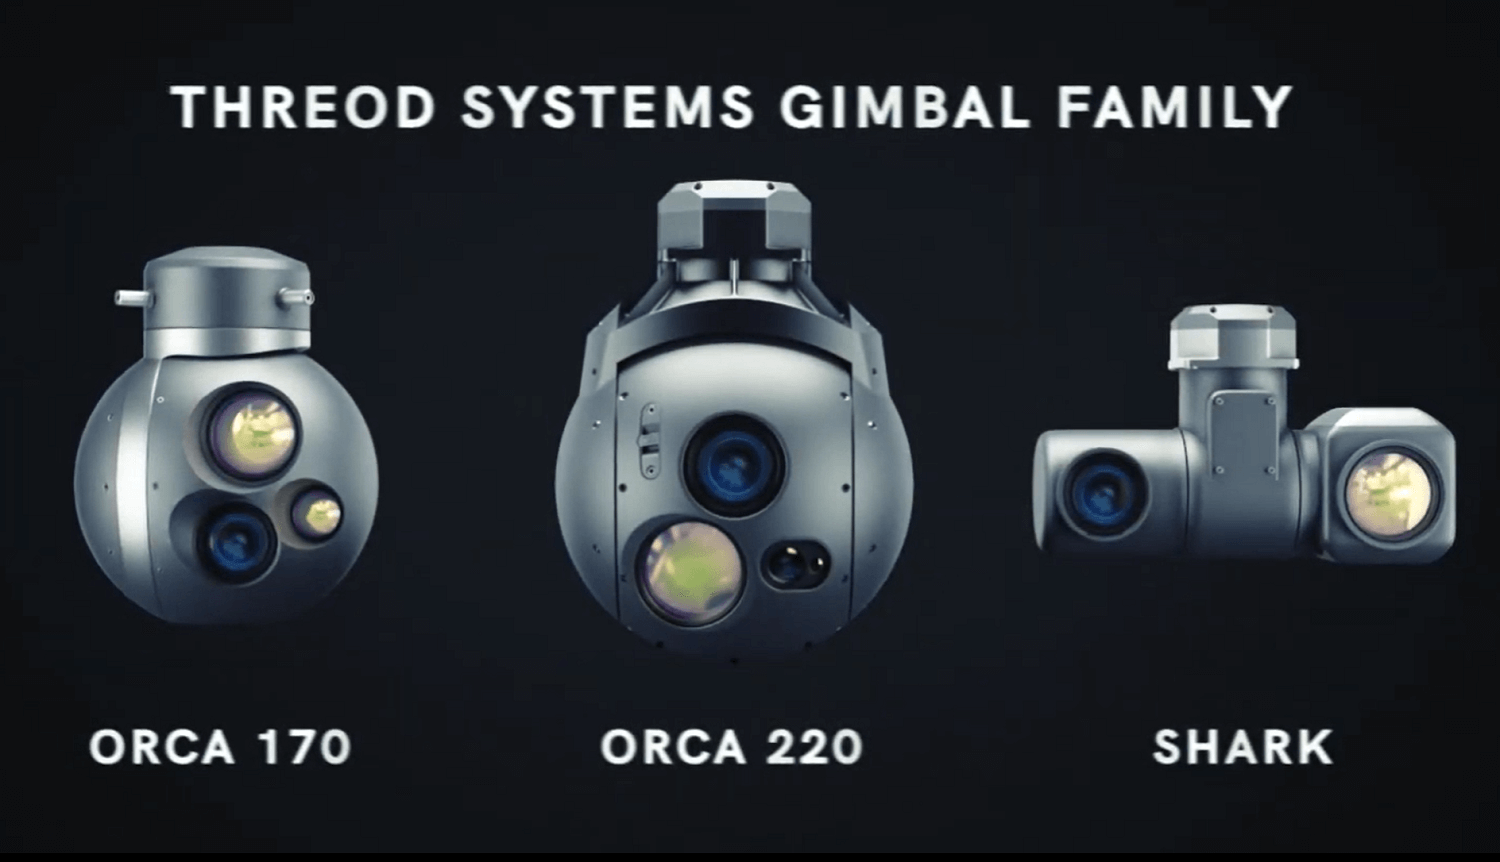 Threod Systems gimbal family including Orca 220 MWIR gimbal